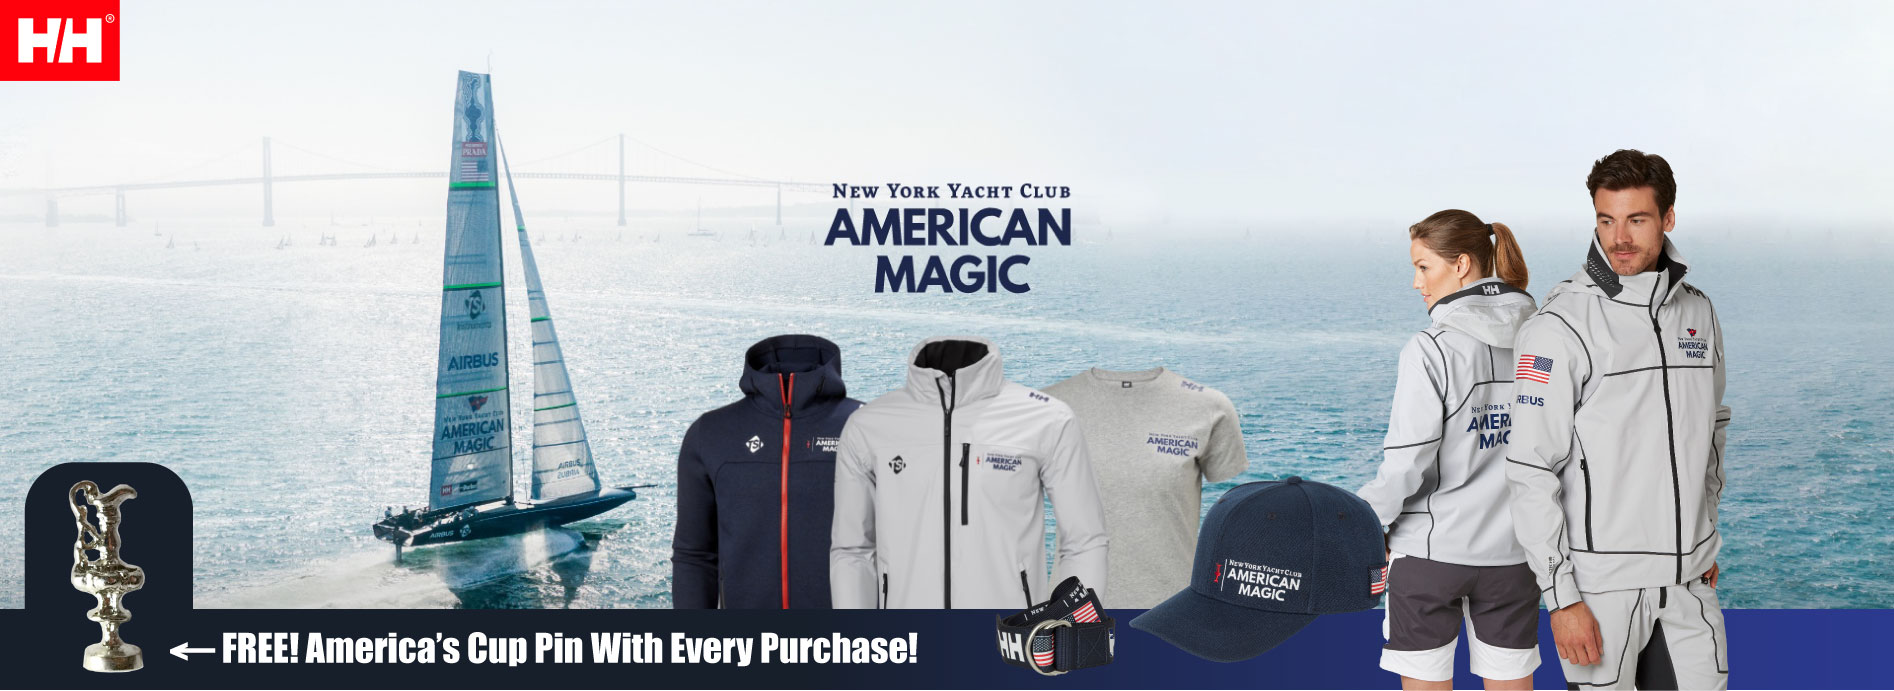 helly-hansen-american-magic-banner.jpg